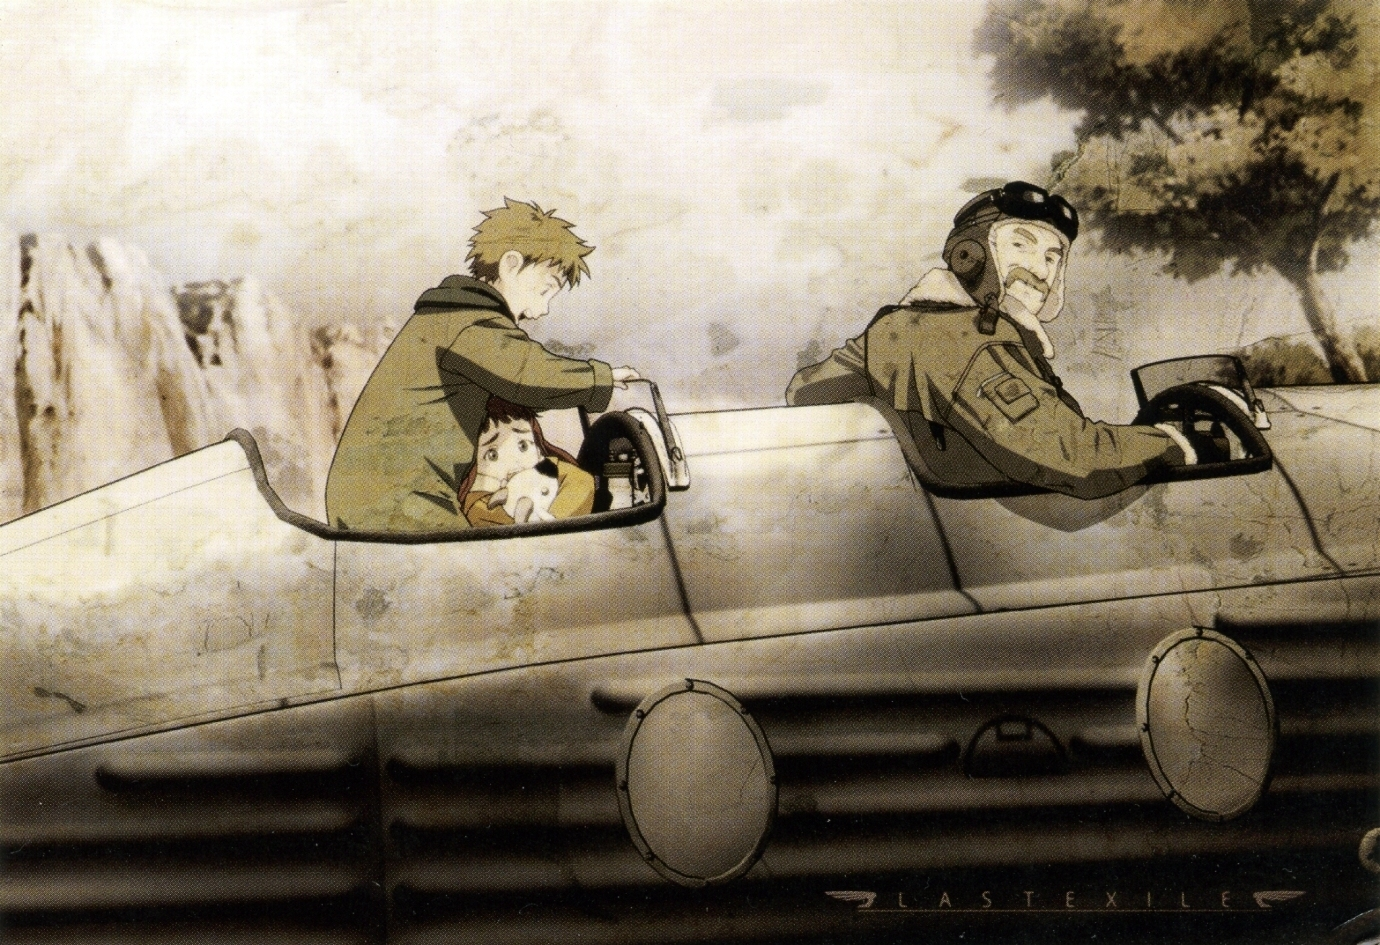 Muryou Anime Wallpaper gt Last Exile gt Last Exile 1380x945